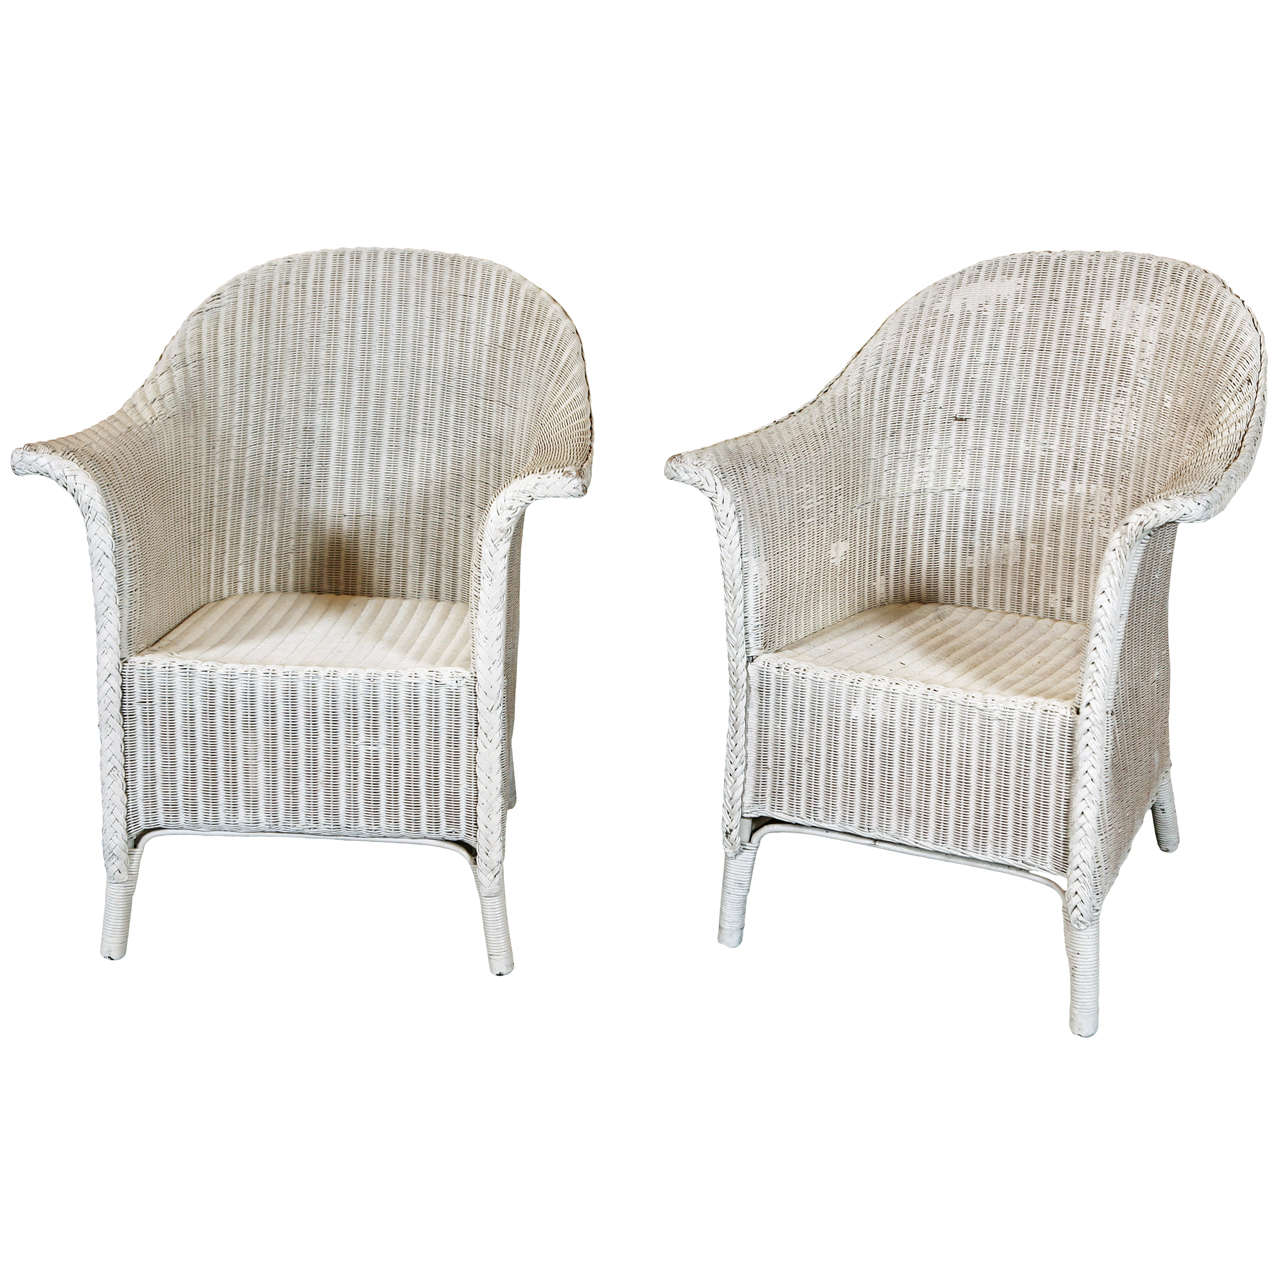 pair wicker arm chairs by lloyd loom at 1stdibs. Black Bedroom Furniture Sets. Home Design Ideas